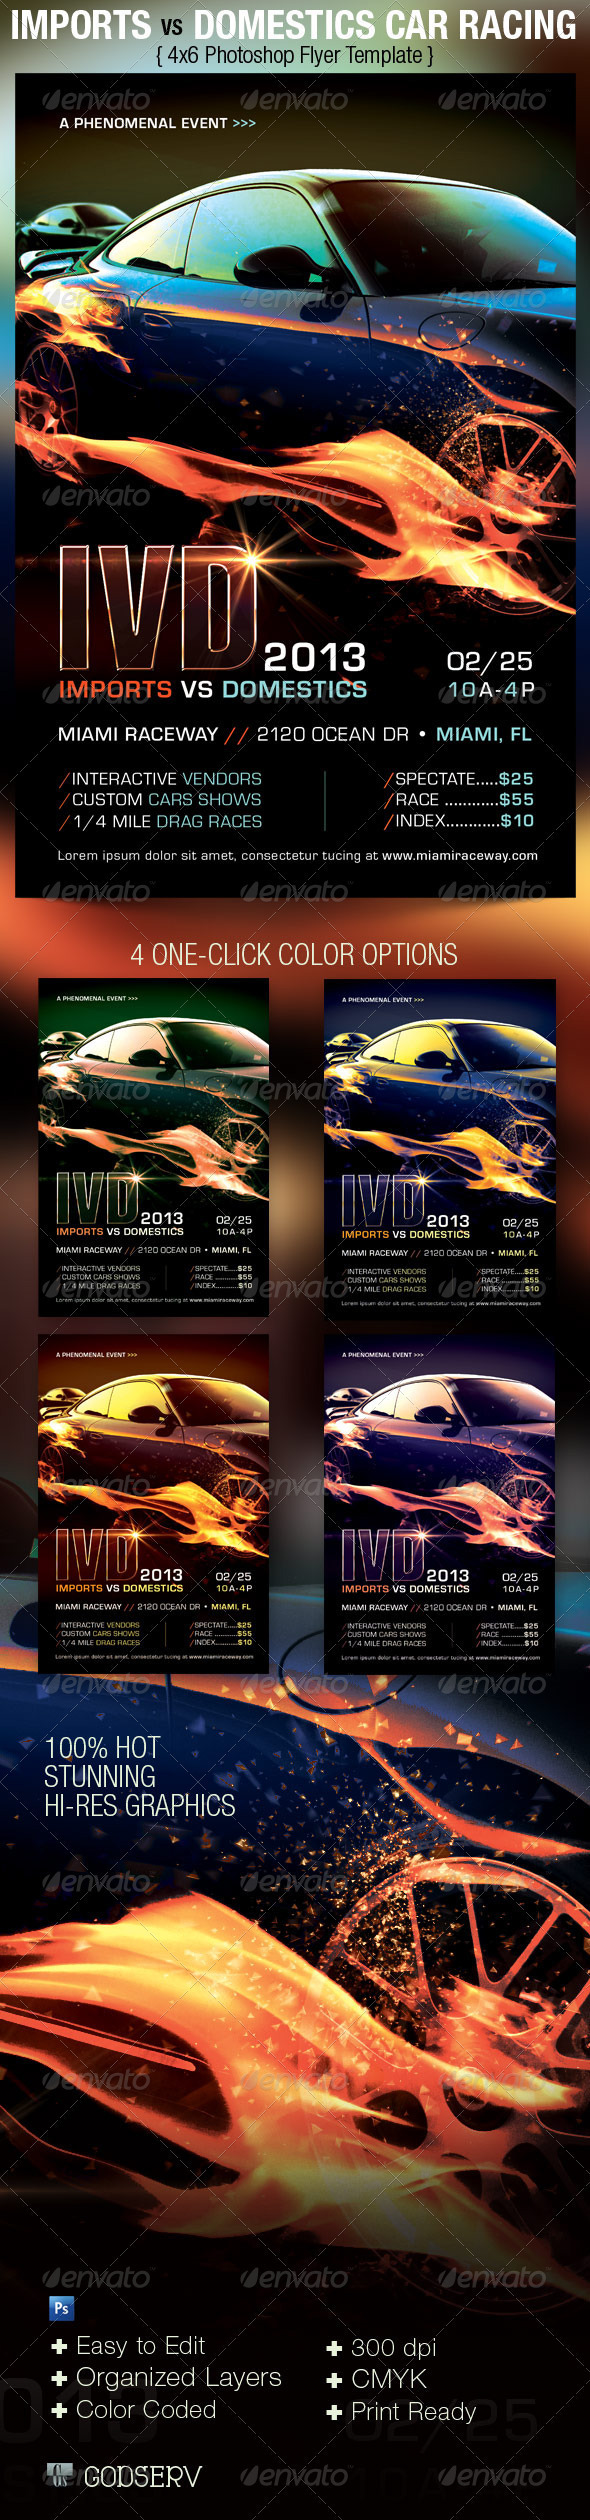 imports vs domestics car racing flyer template on behance